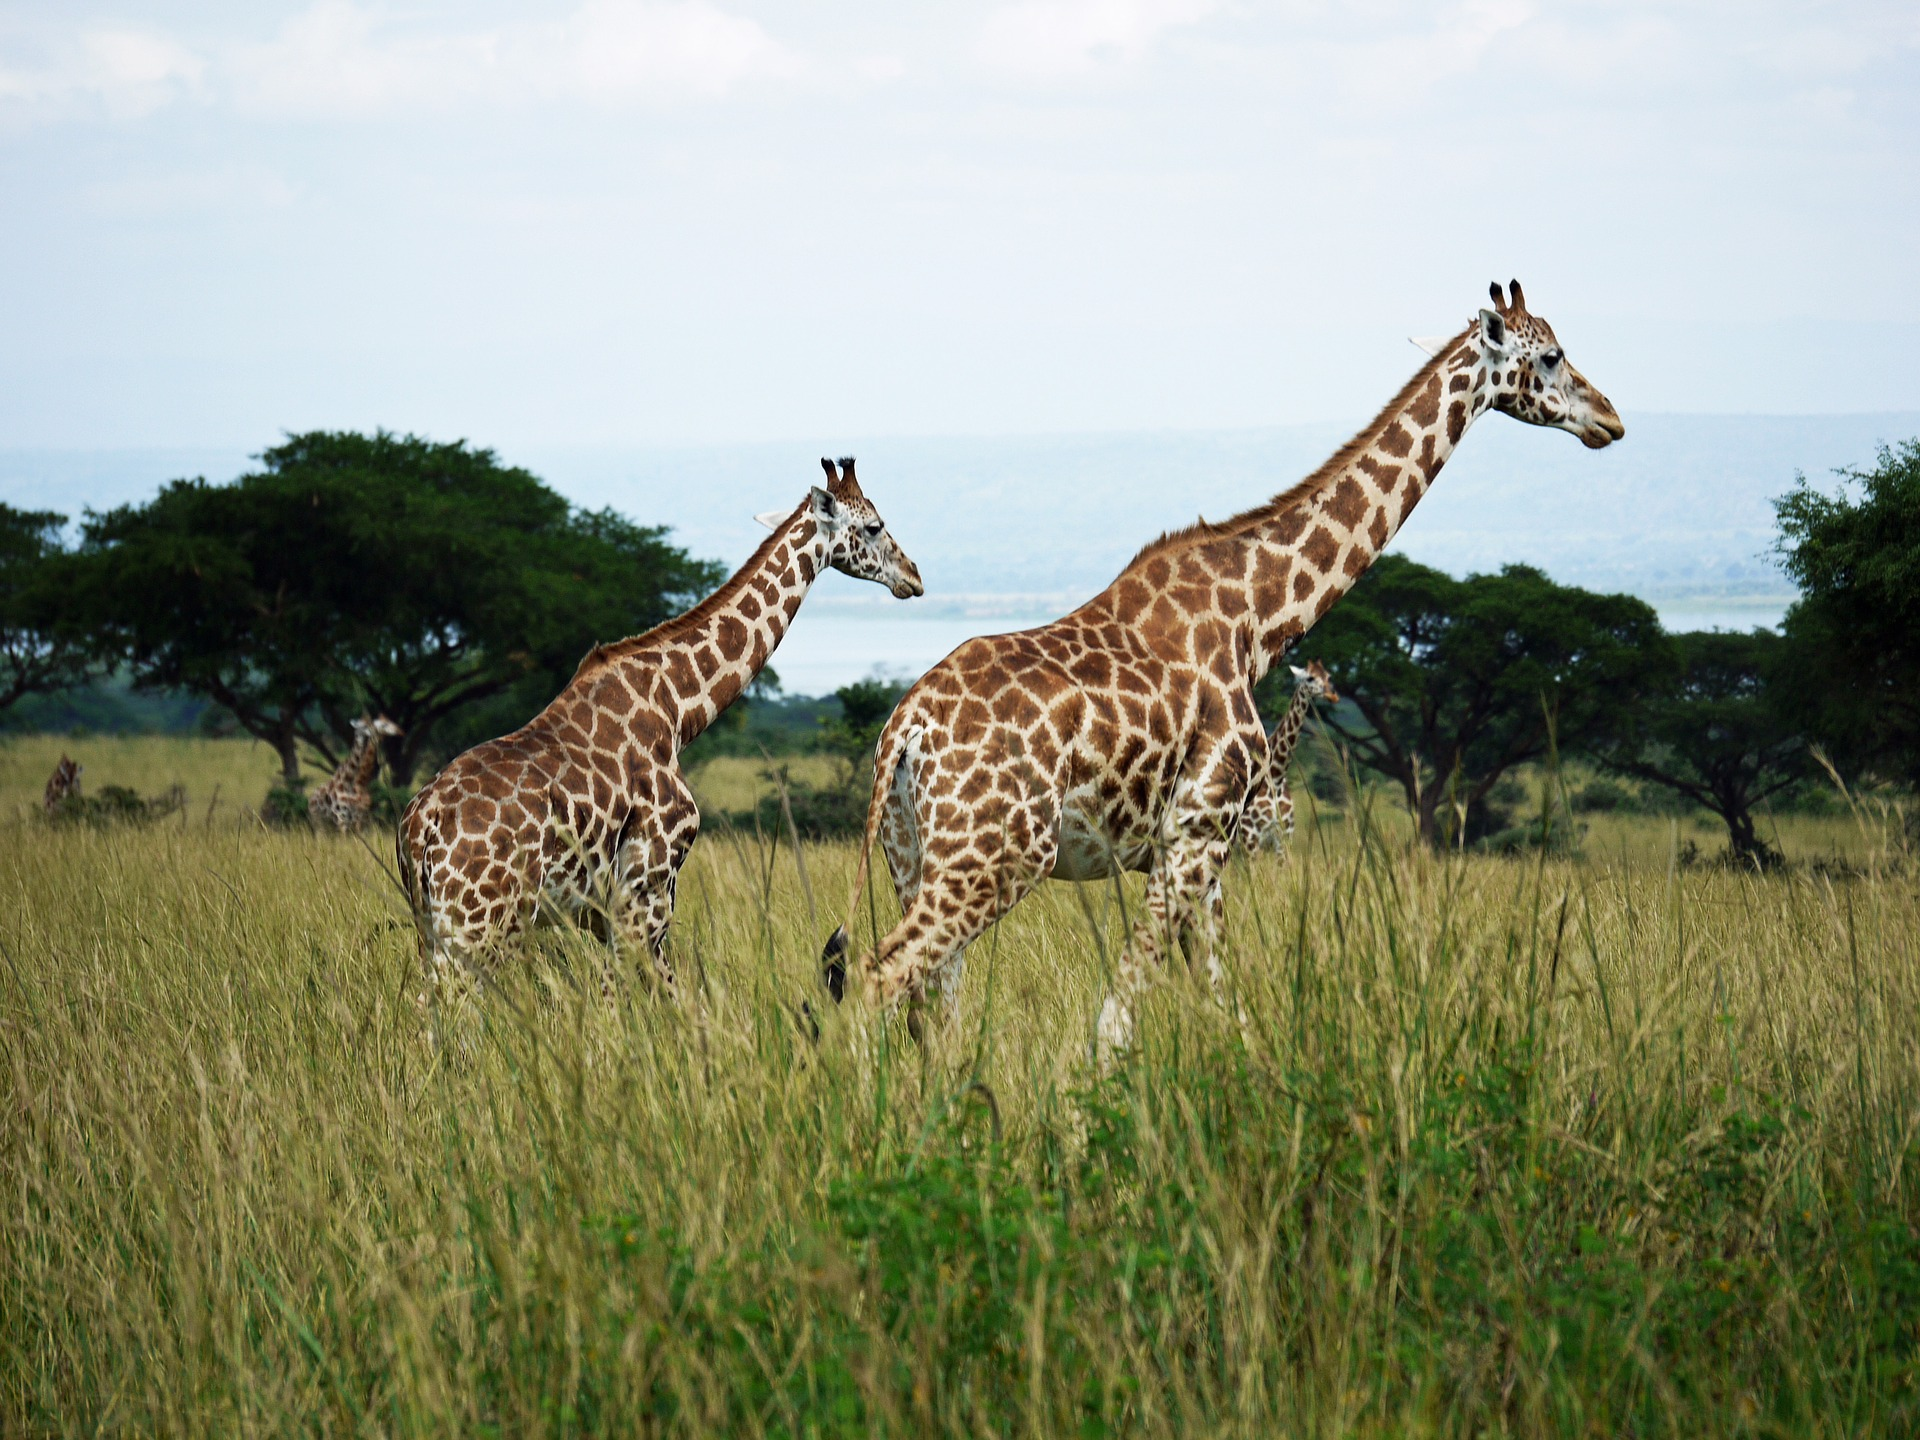 Rothschild's giraffes at Murchison Falls National Park in Uganda